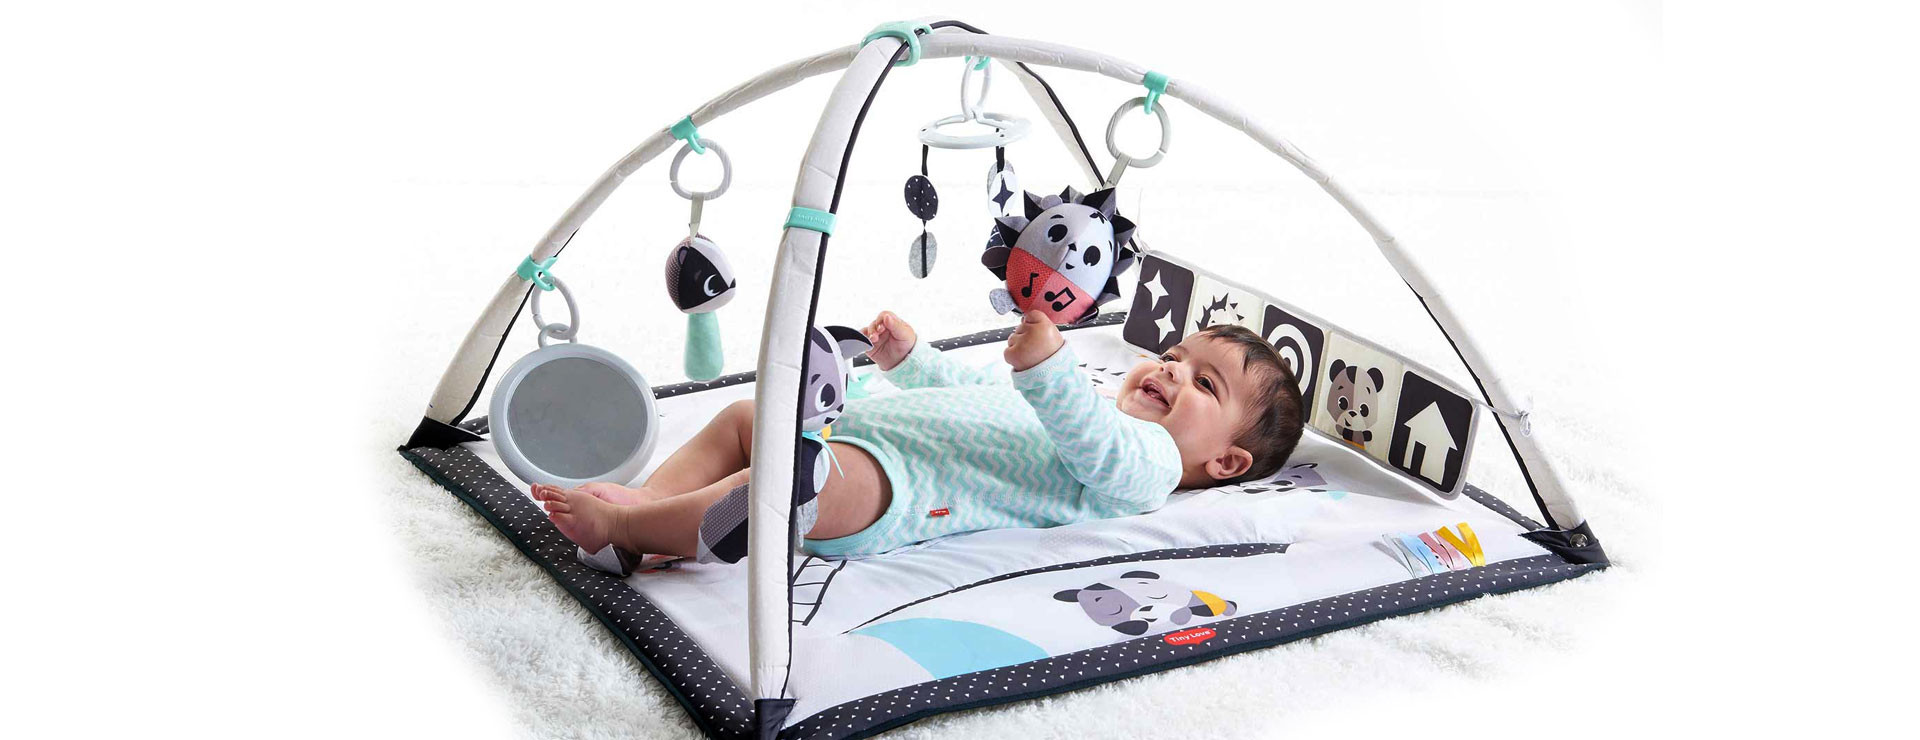 Specially designed to support baby's development from day one